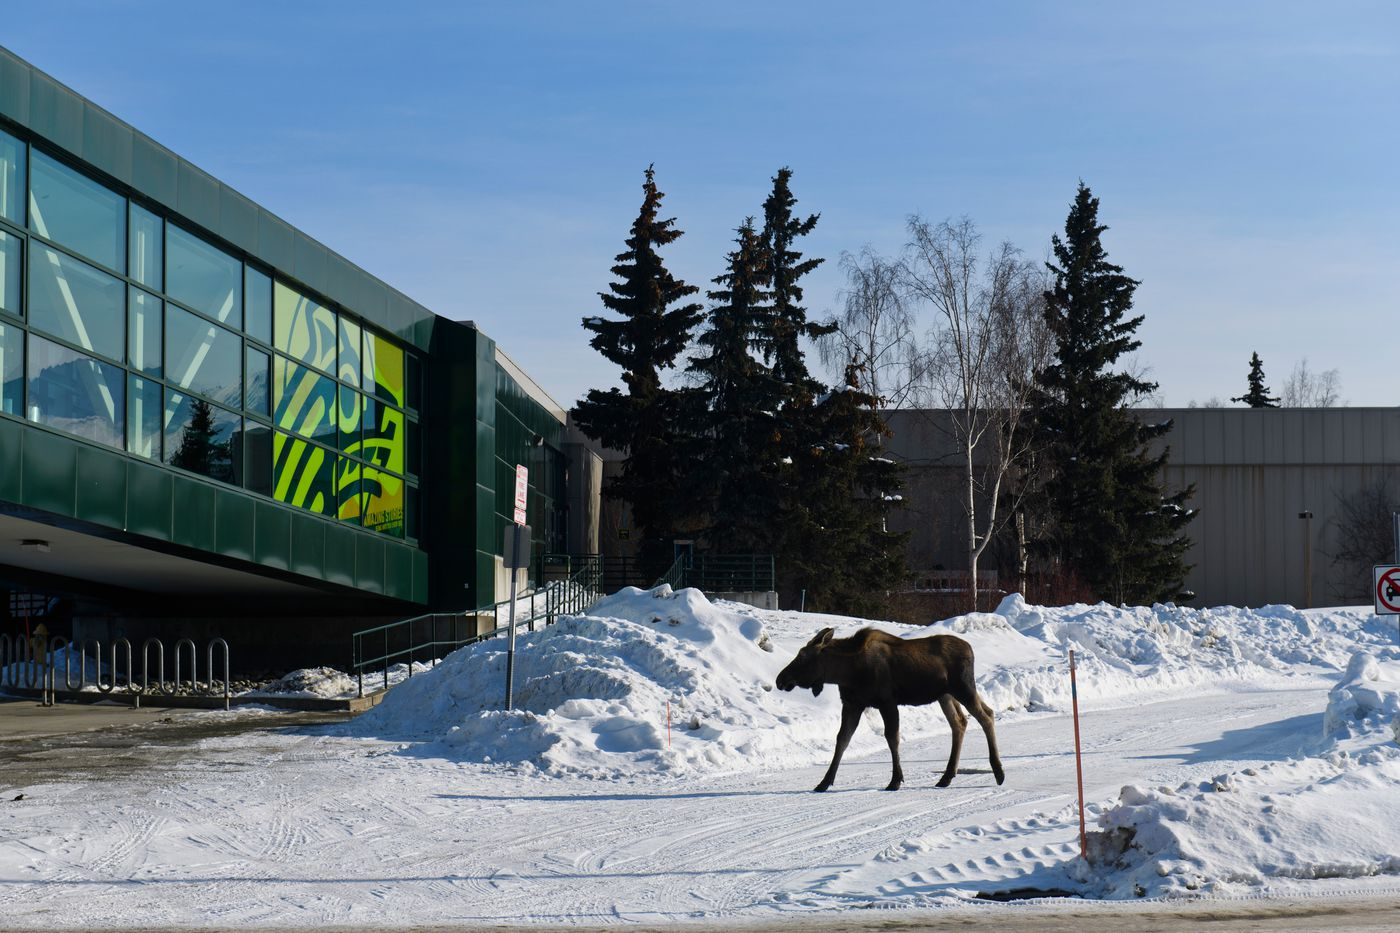 A moose walks across the UAA campus on March 13, 2020. University of Alaska announced that most UA courses will be offered using an alternate delivery method starting March 23, 2020. (Marc Lester / ADN)